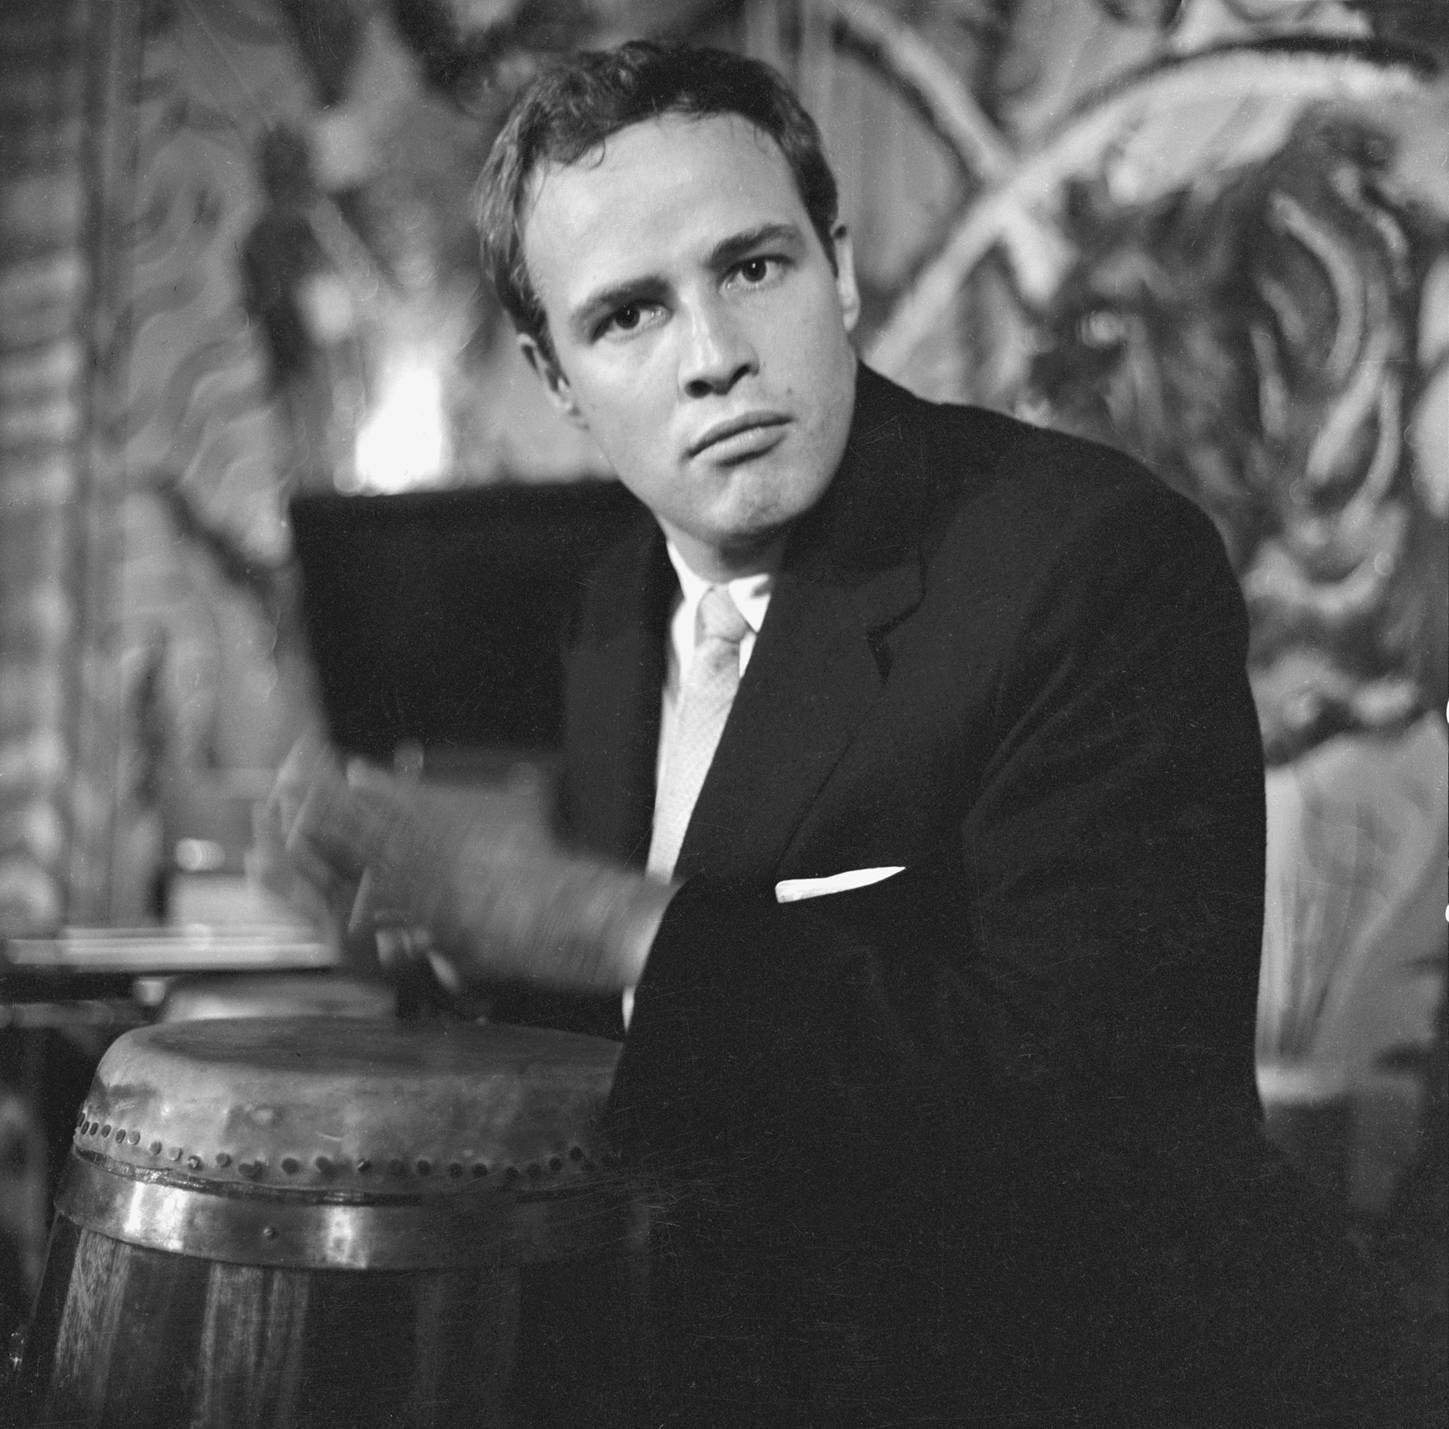 a biography of marlon brando one of the best movie actors of all time Marlon brando jr (april 3, 1924 - july 1, 2004) was an american actor and film director regarded for his cultural influence on 20th-century film, brando's academy award-winning performances include that of terry malloy in on the waterfront (1954) and don vito corleone in the godfather (1972.